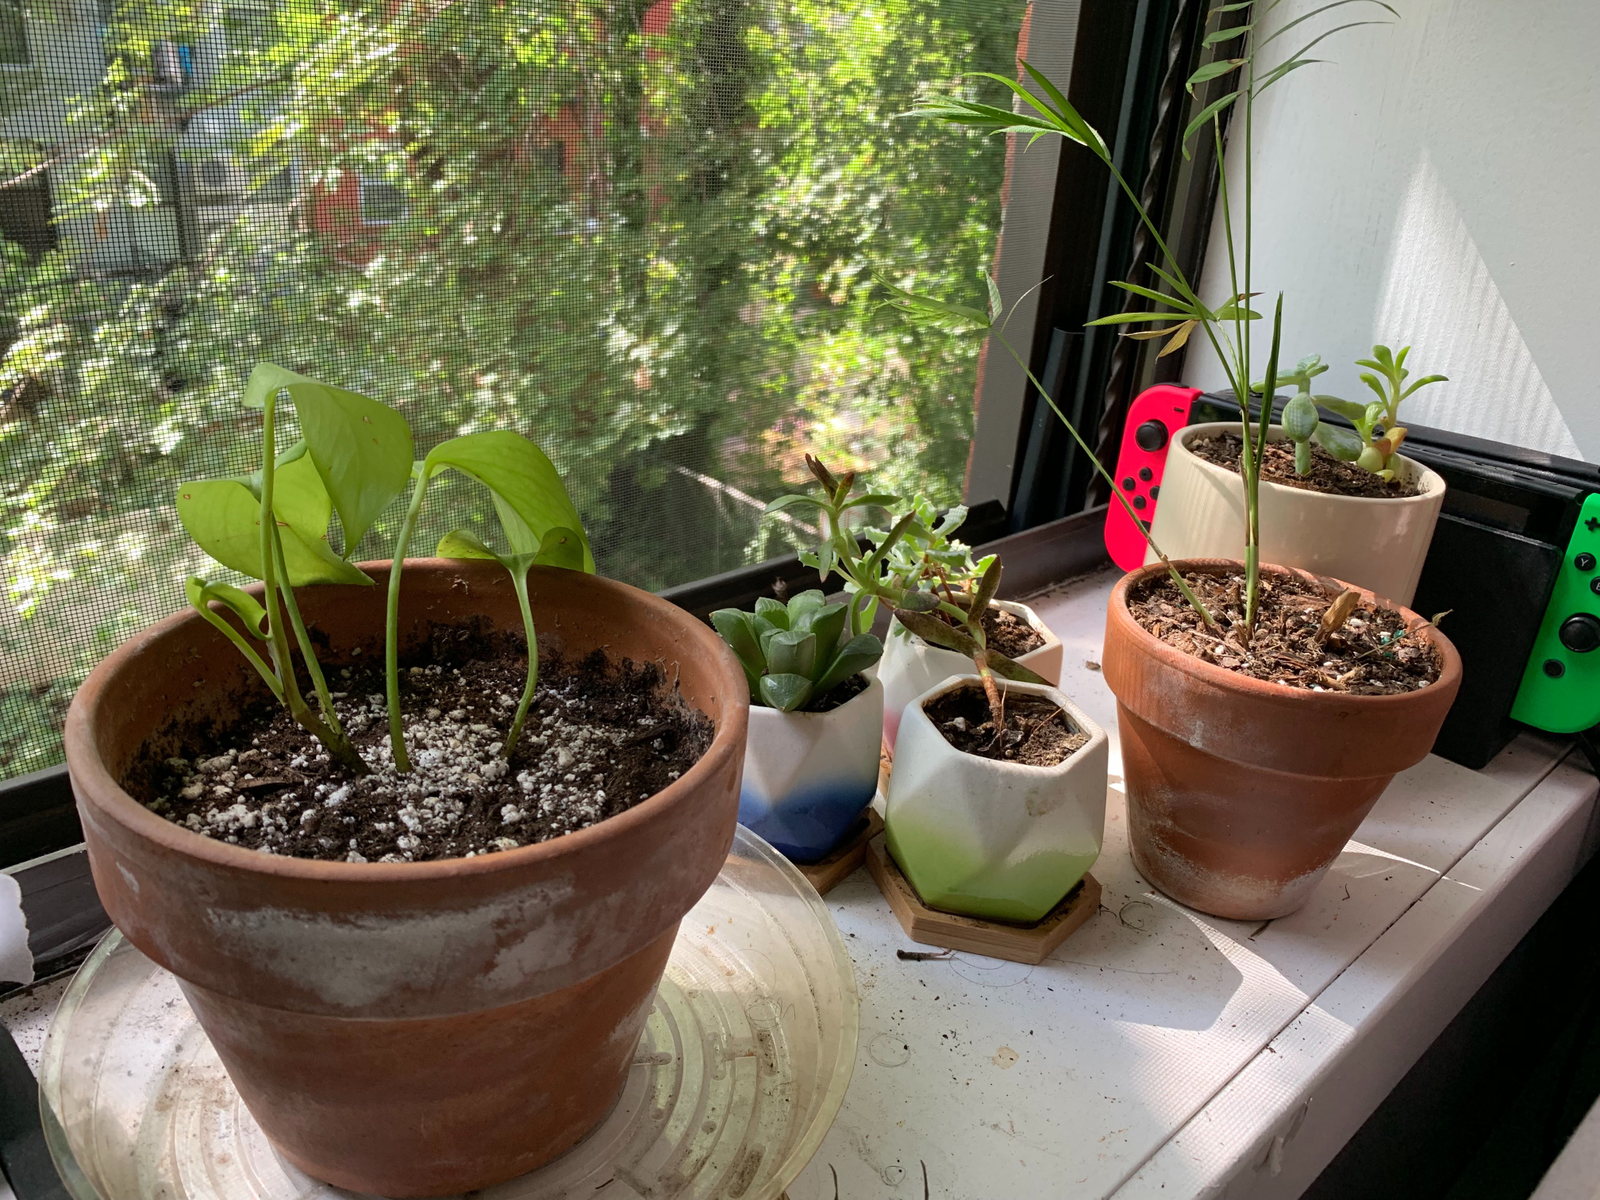 For frame of reference, here are my darling plants.